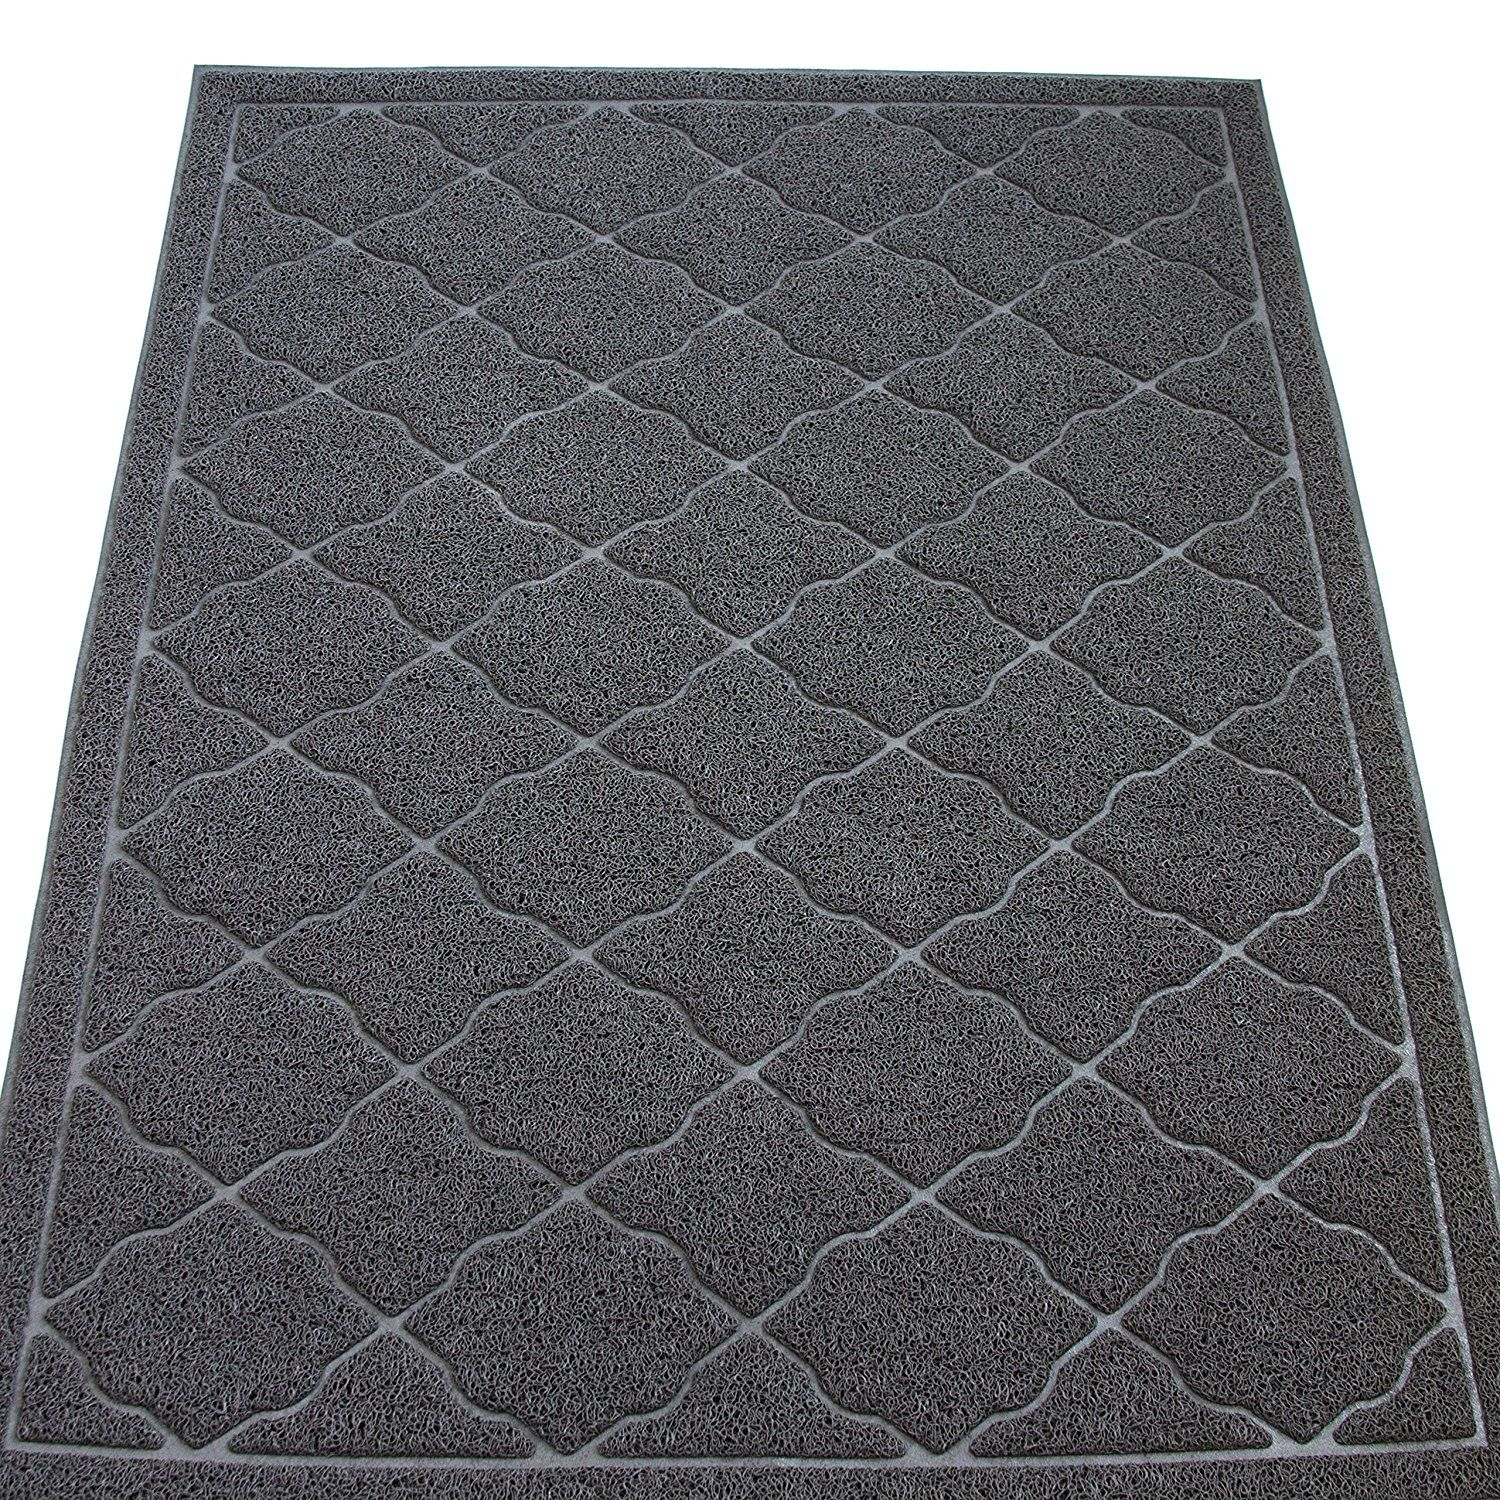 Jumbo Size (47x35 in) Cat Litter Mat By KW Pets NonToxic